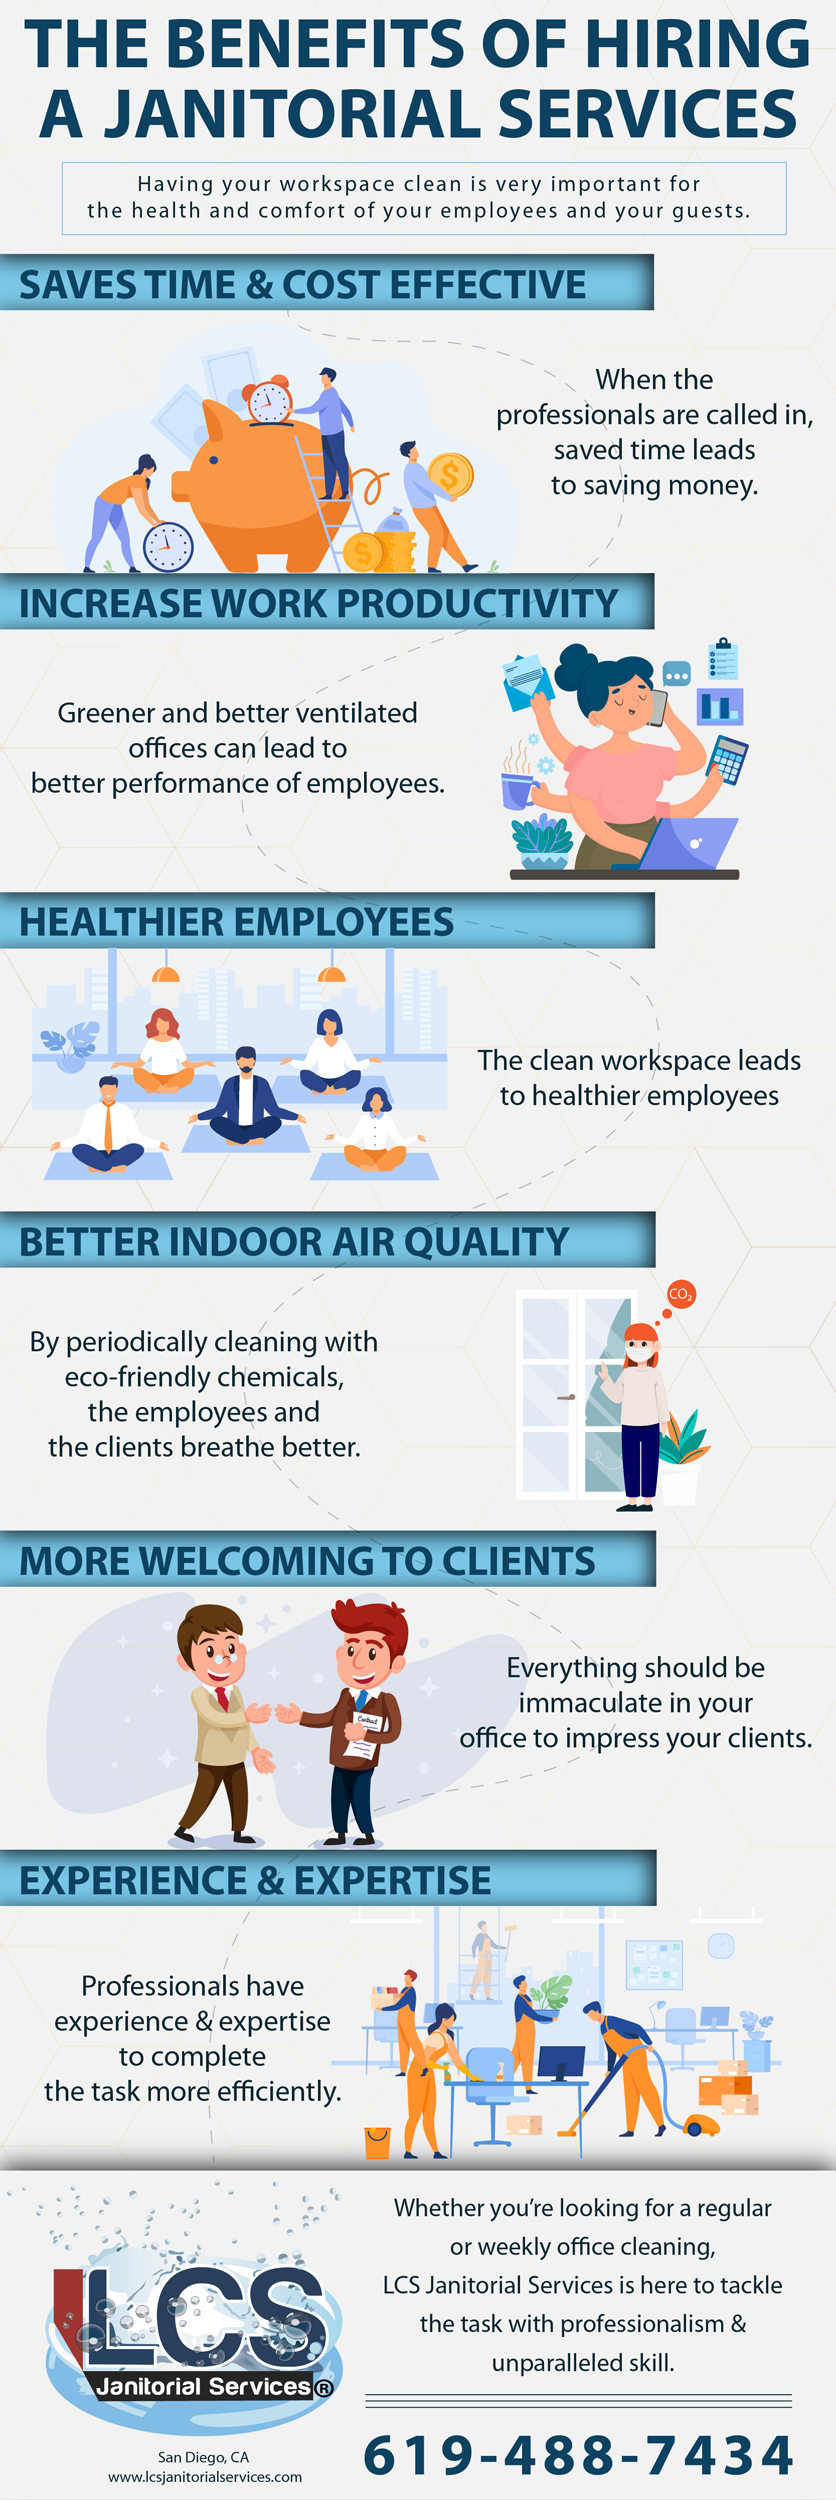 The Benefits Of Hiring A Janitorial Services Infographic